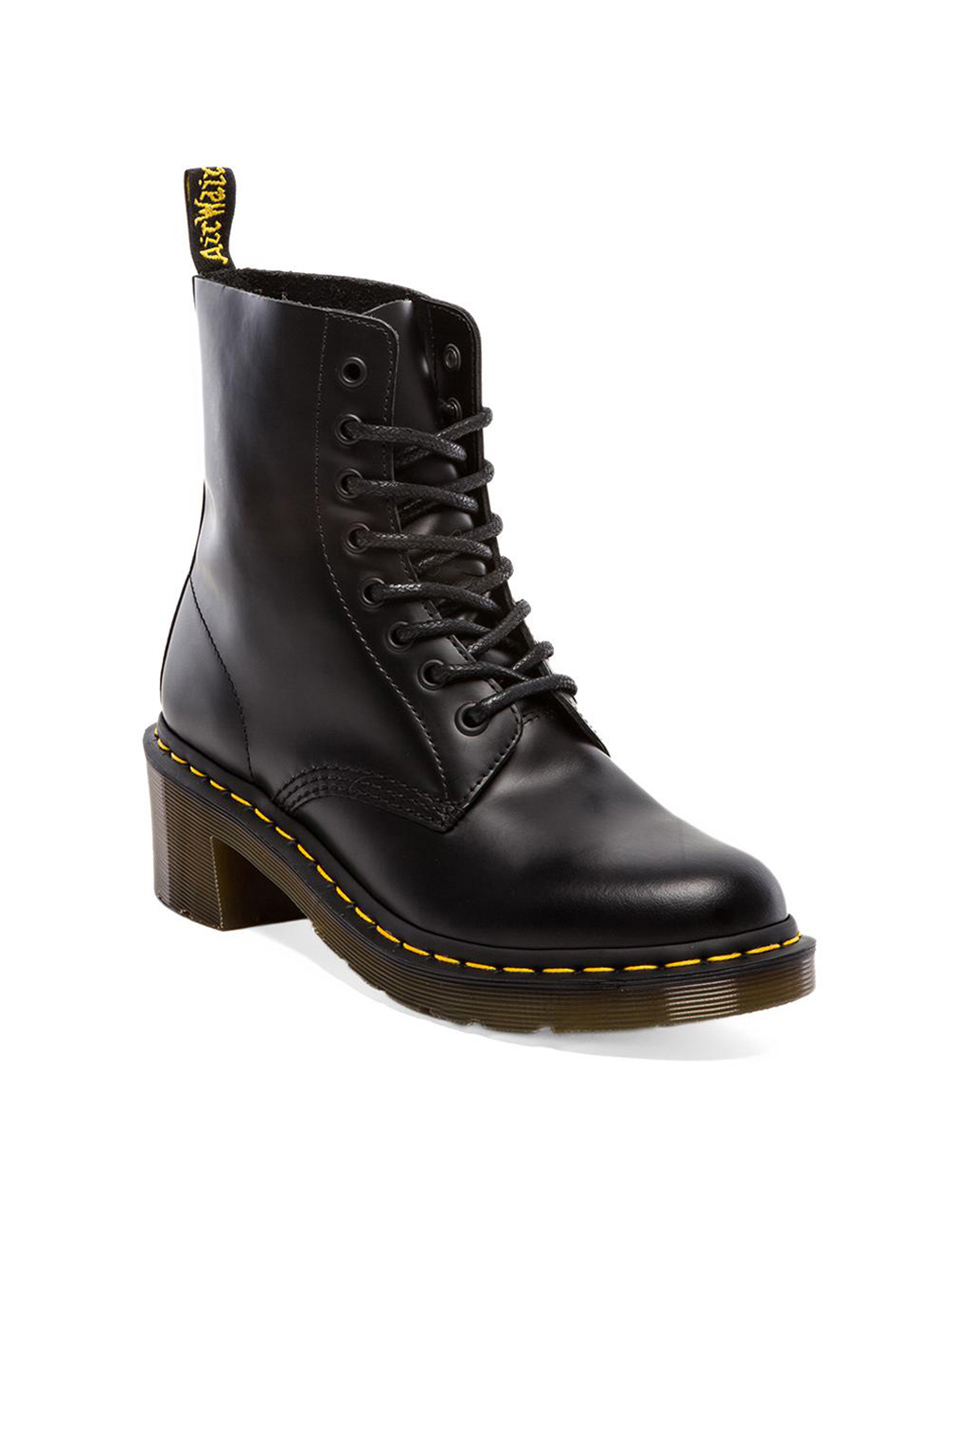 Dr. Martens Clemency 8-Tie Boot in Black